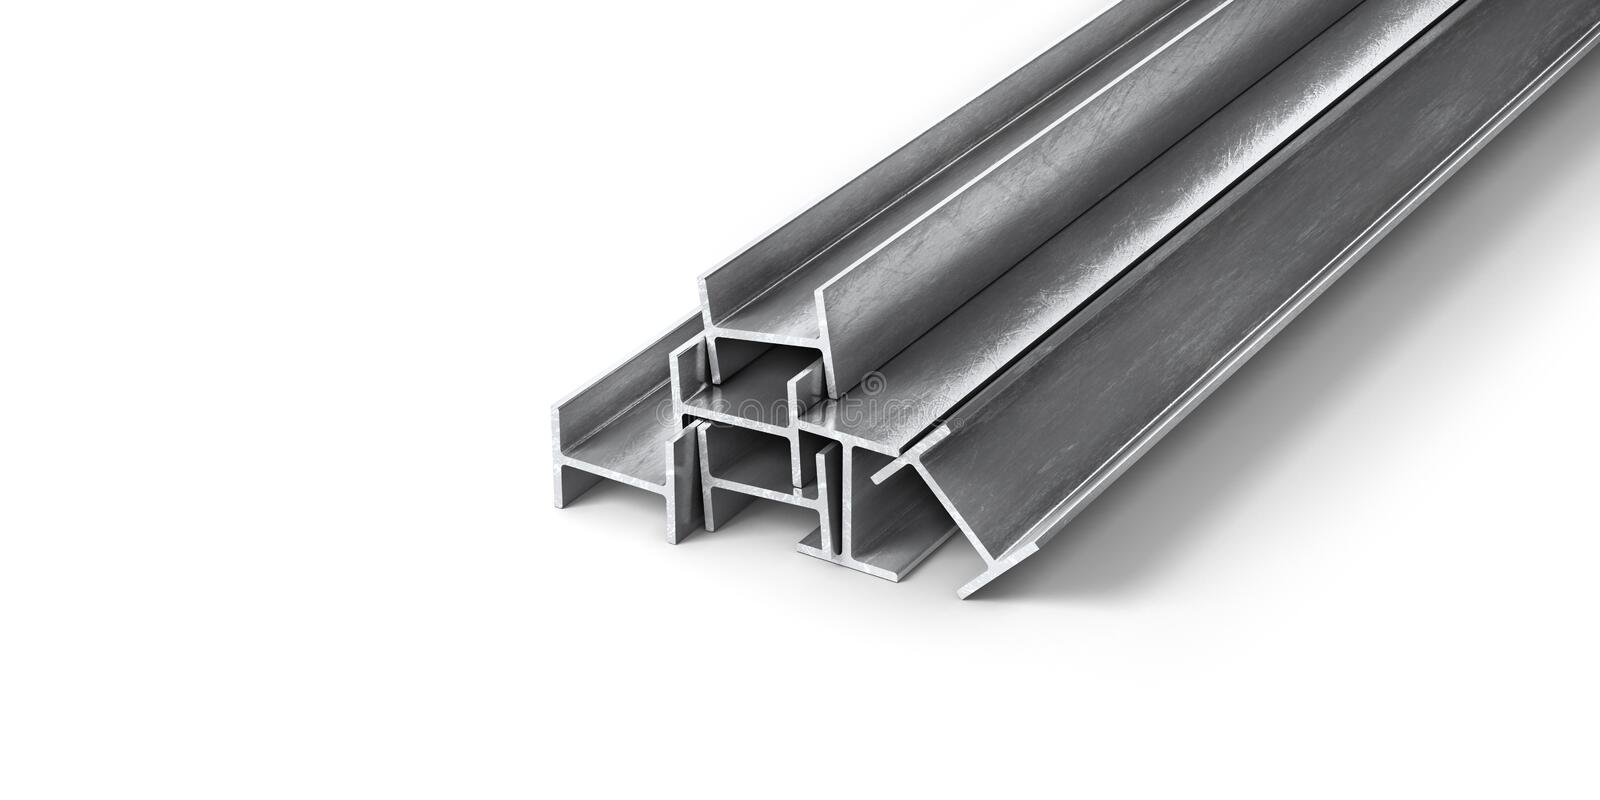 Rolled metal products. Steel profiles and tubes. vector illustration